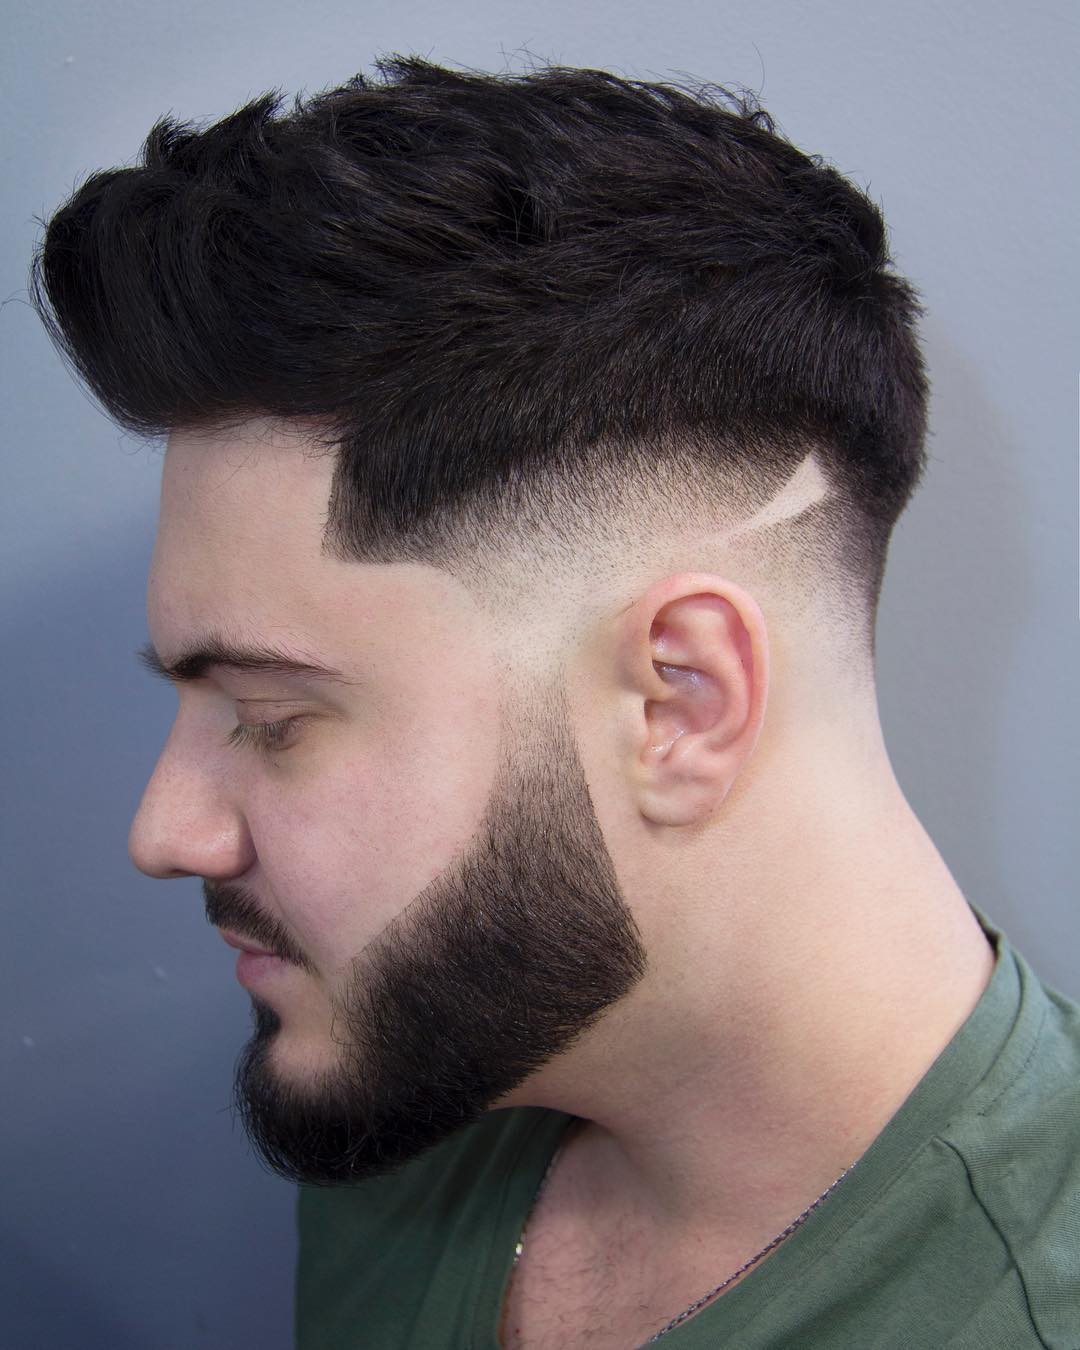 Sensational Top 15 Beard Styles For 2020 Natural Hairstyles Runnerswayorg